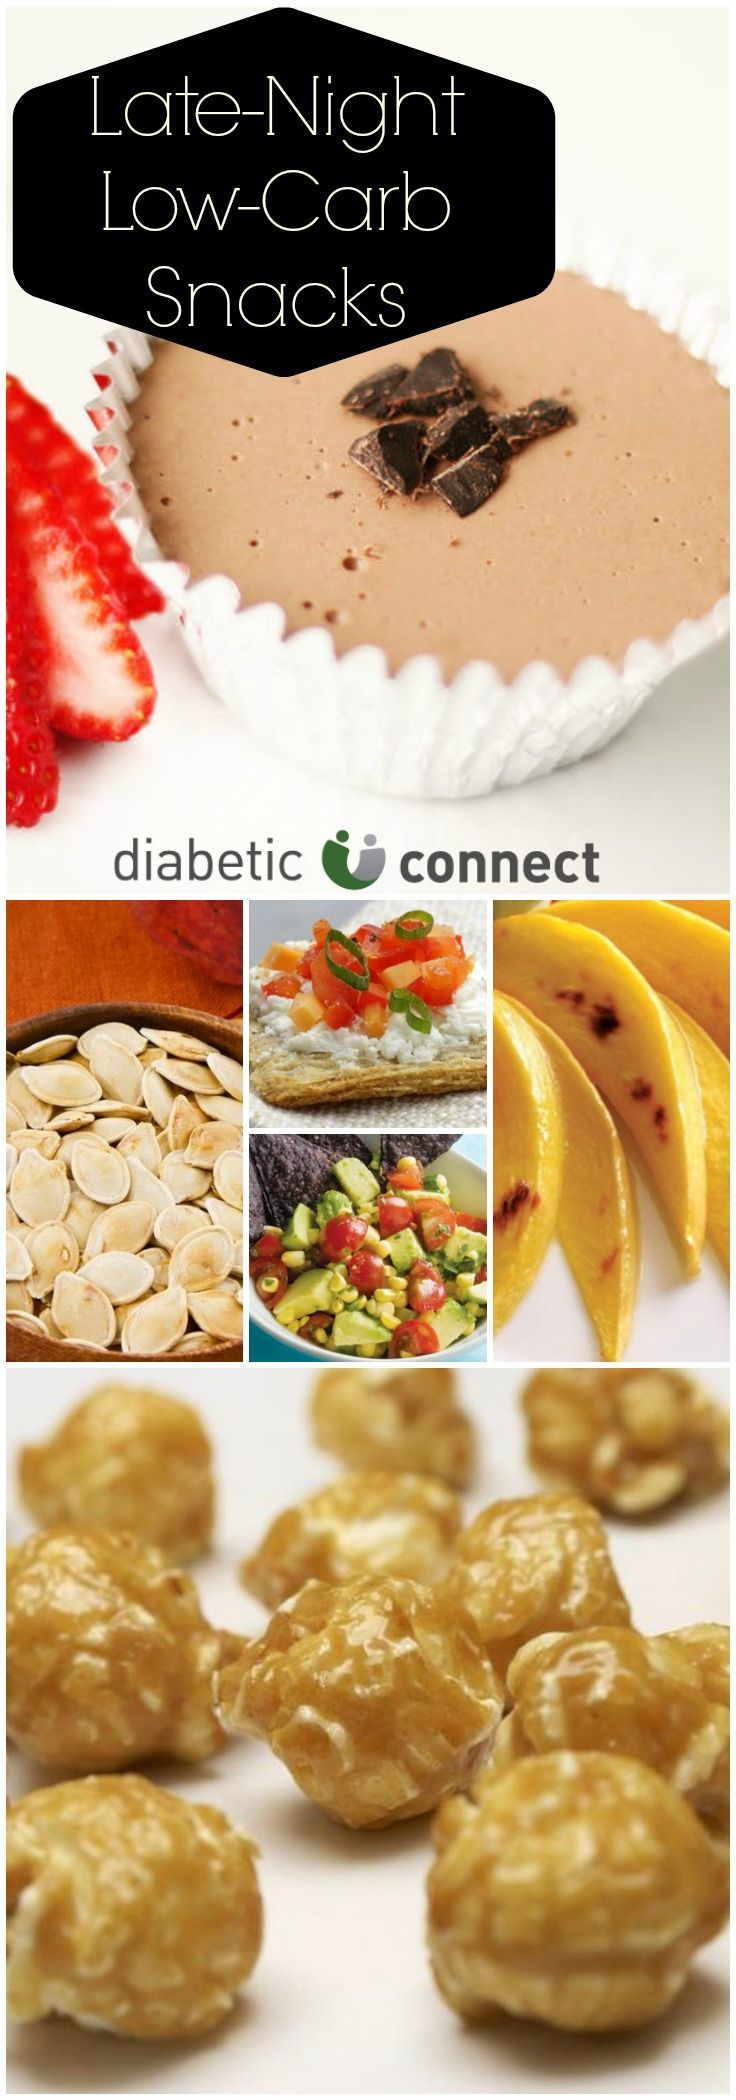 When the munchies strike at night, don't blow your blood sugar on high-carb snacks. Try these diabetic-friendly snacking options. Recipes include Caramel Popcorn, Chocolate Cheesecake, Fried Pickles, Pizza Bites and more. For more snack ideas visit www.diabeticconnect.com #snacks #diabetesdiet